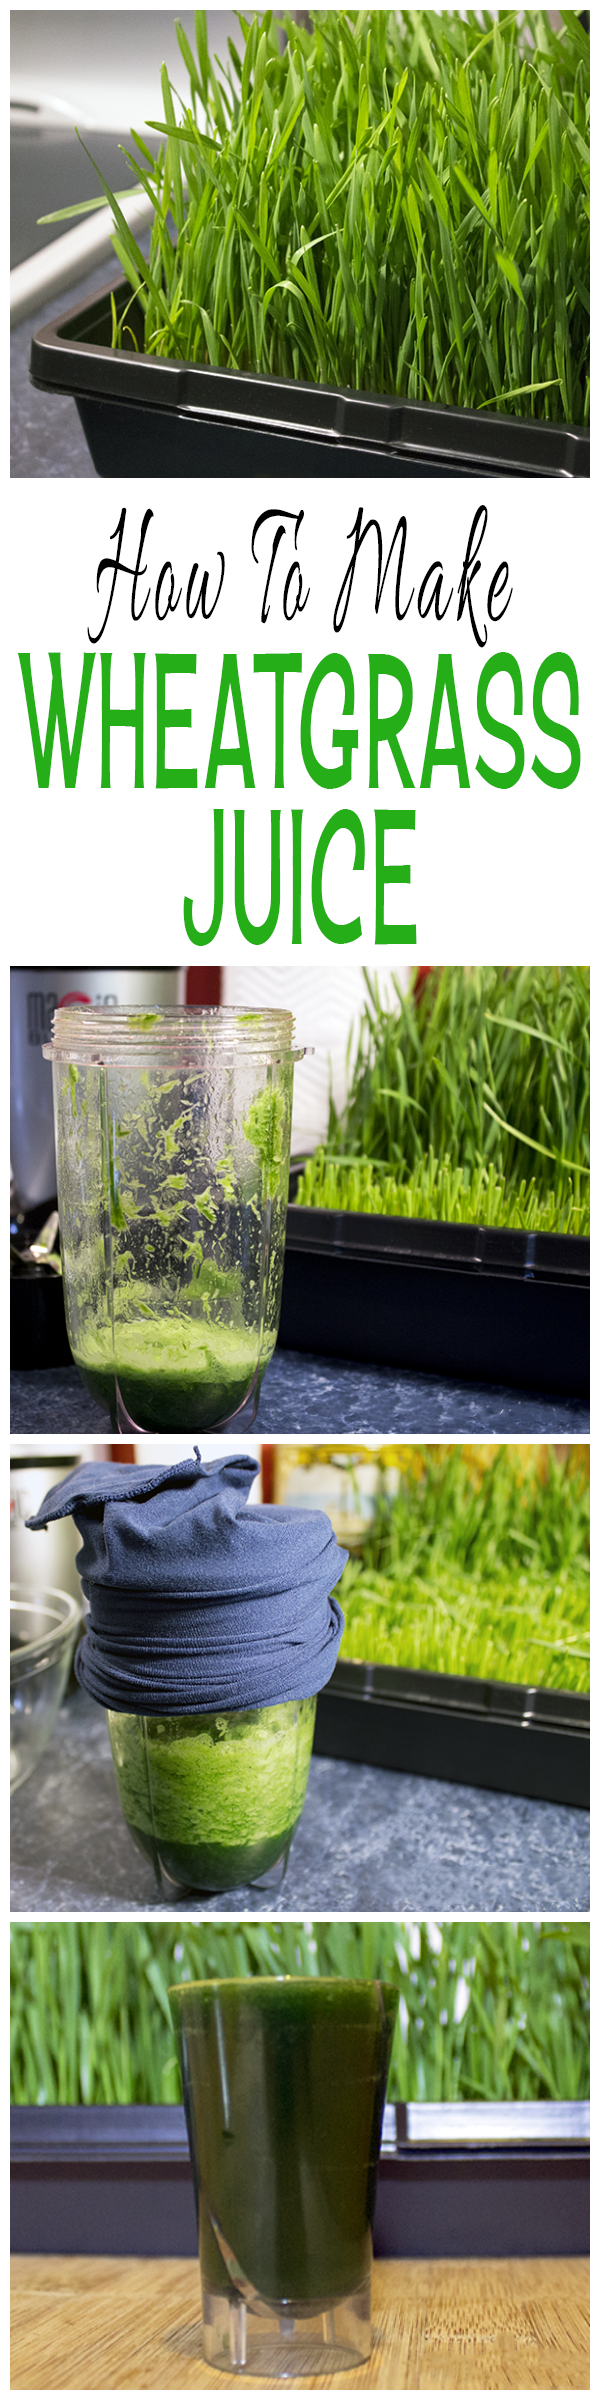 How To Make Wheatgrass Juice Using Fresh Wheatgrass And A Blender